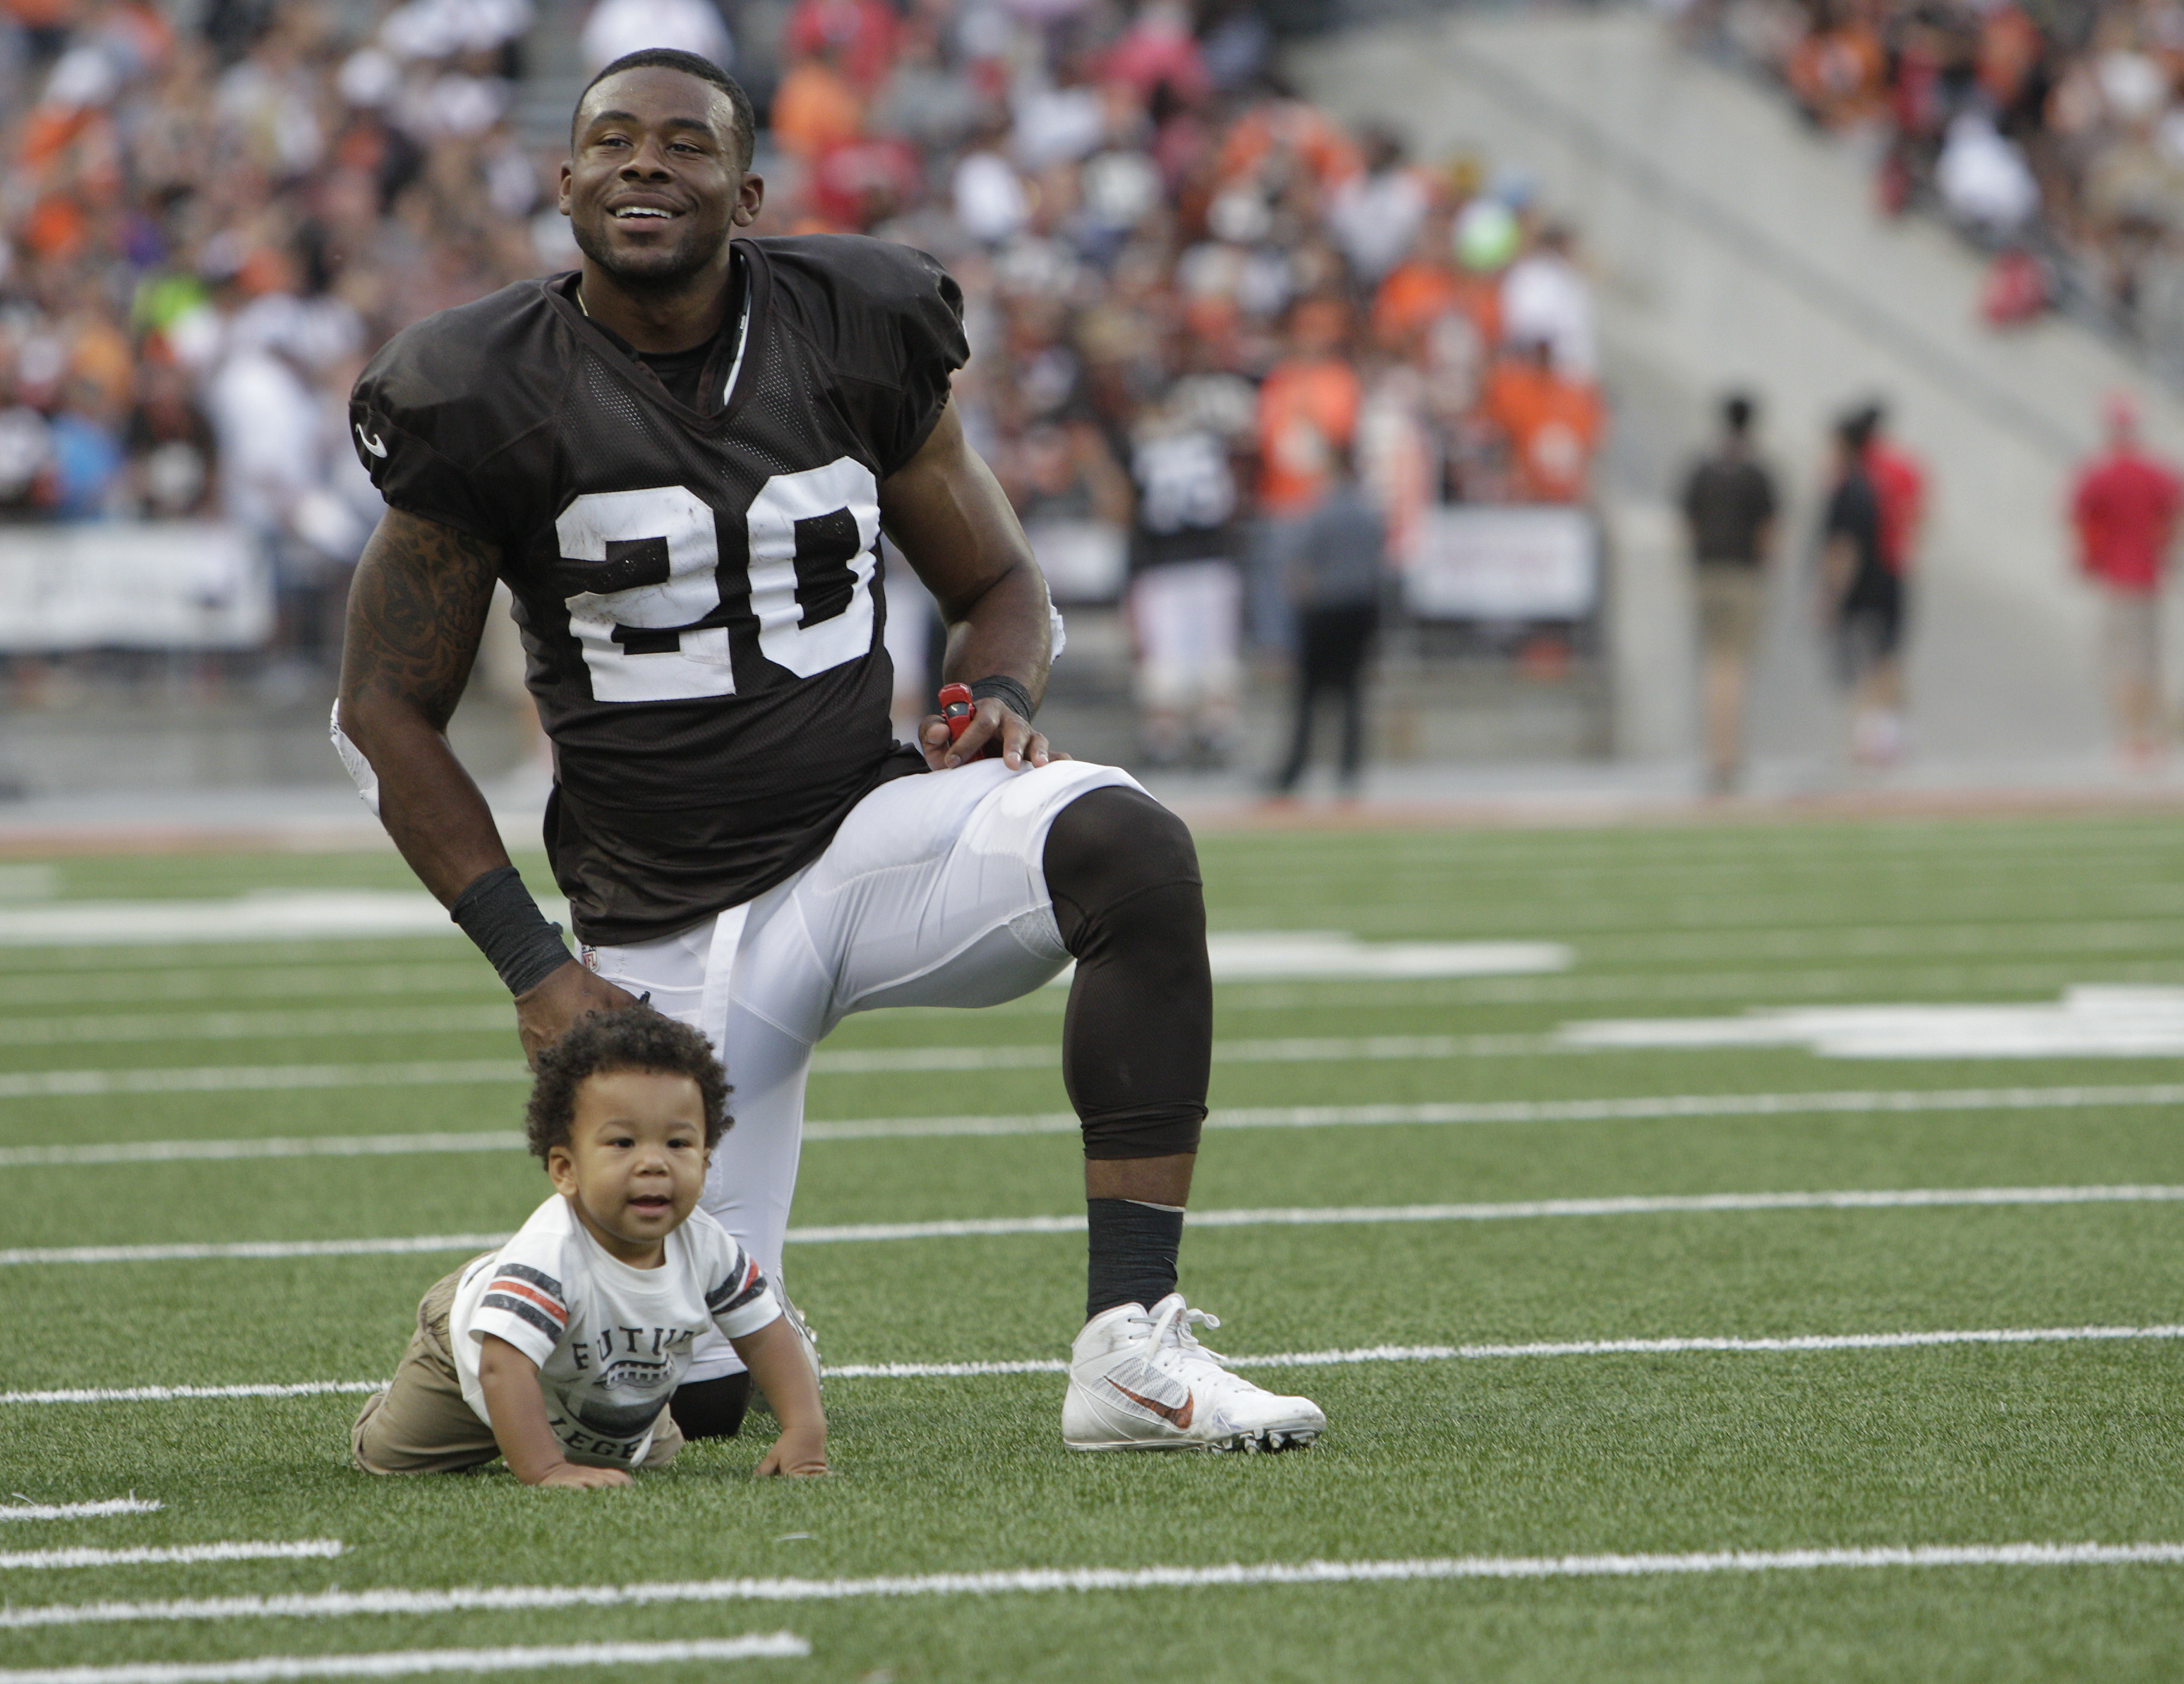 Cleveland Browns running back Shaun Draughn watches his son Kamden crawl on the field at Ohio Stadium after an NFL football training camp scrimmage game at Ohio Stadium, Friday, Aug. 7, 2015, in Columbus, Ohio. (AP Photo/Jay LaPrete)